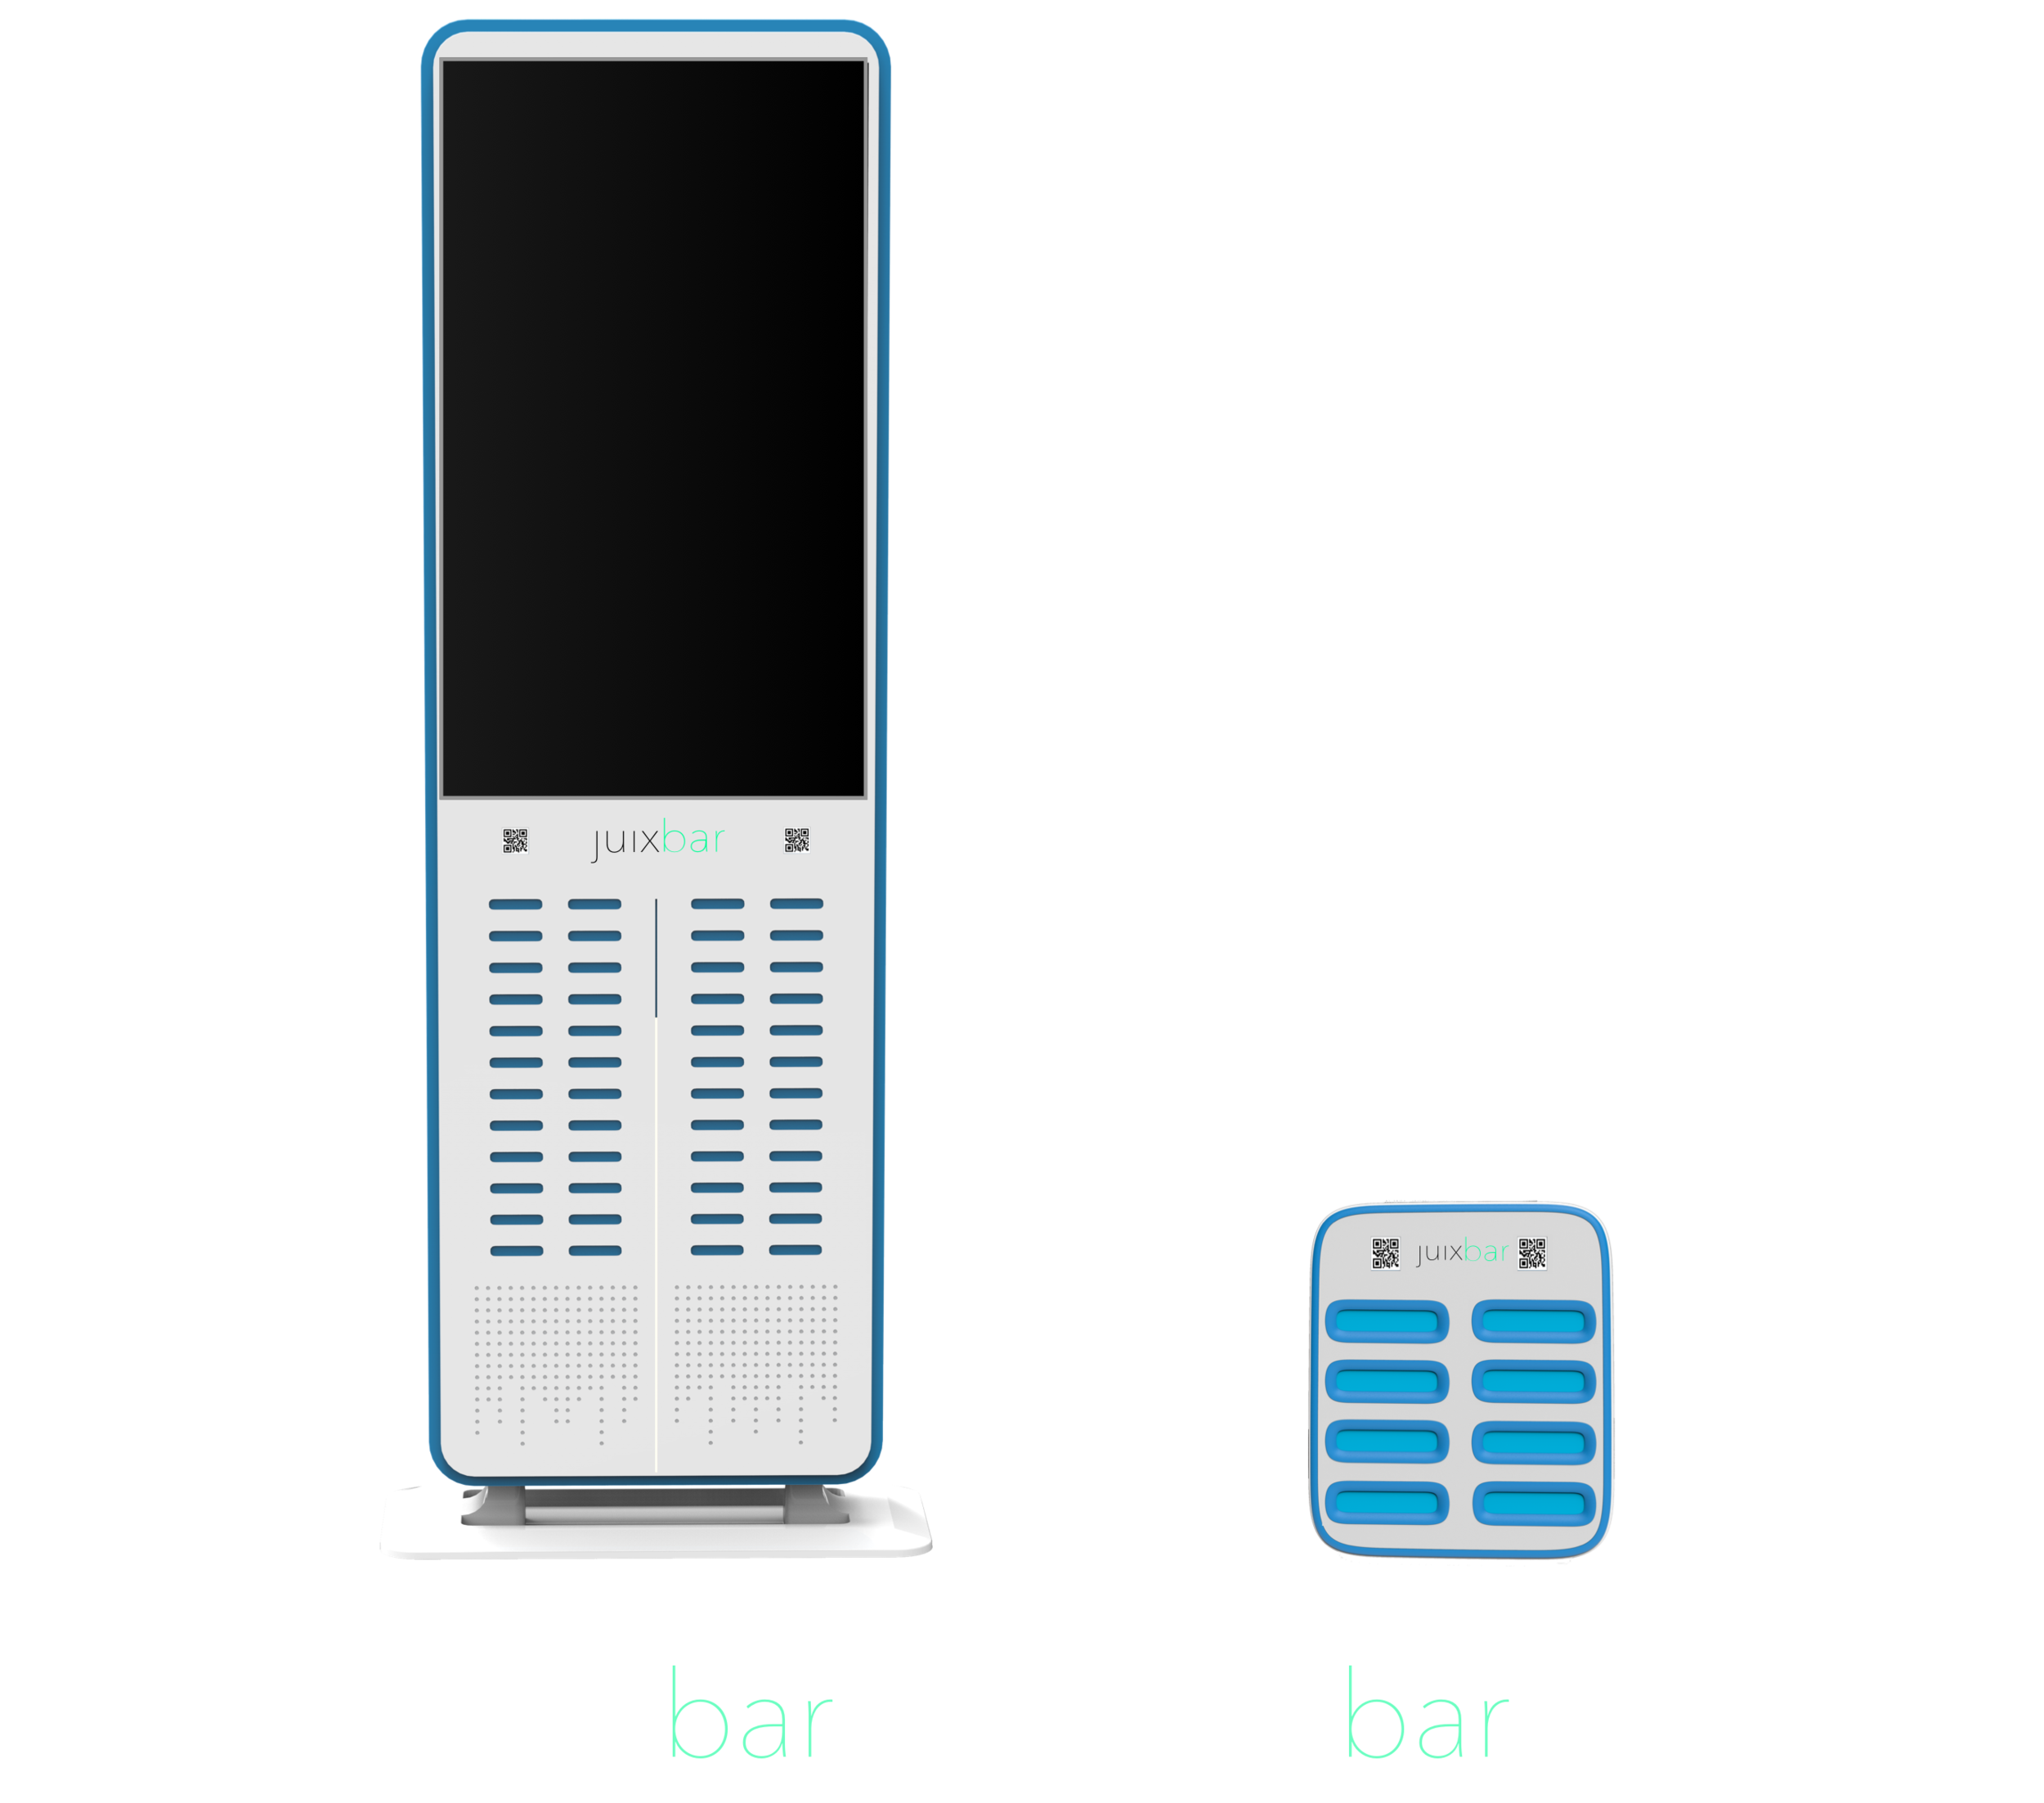 Convenient & Accessible - Juixboxes can be picked up or dropped off at your local Juixbar anytime you need charging on the go. They can be found at coffee shops, night clubs, malls, airports, and more. Simply rent a power bank and return it at any nearby location.